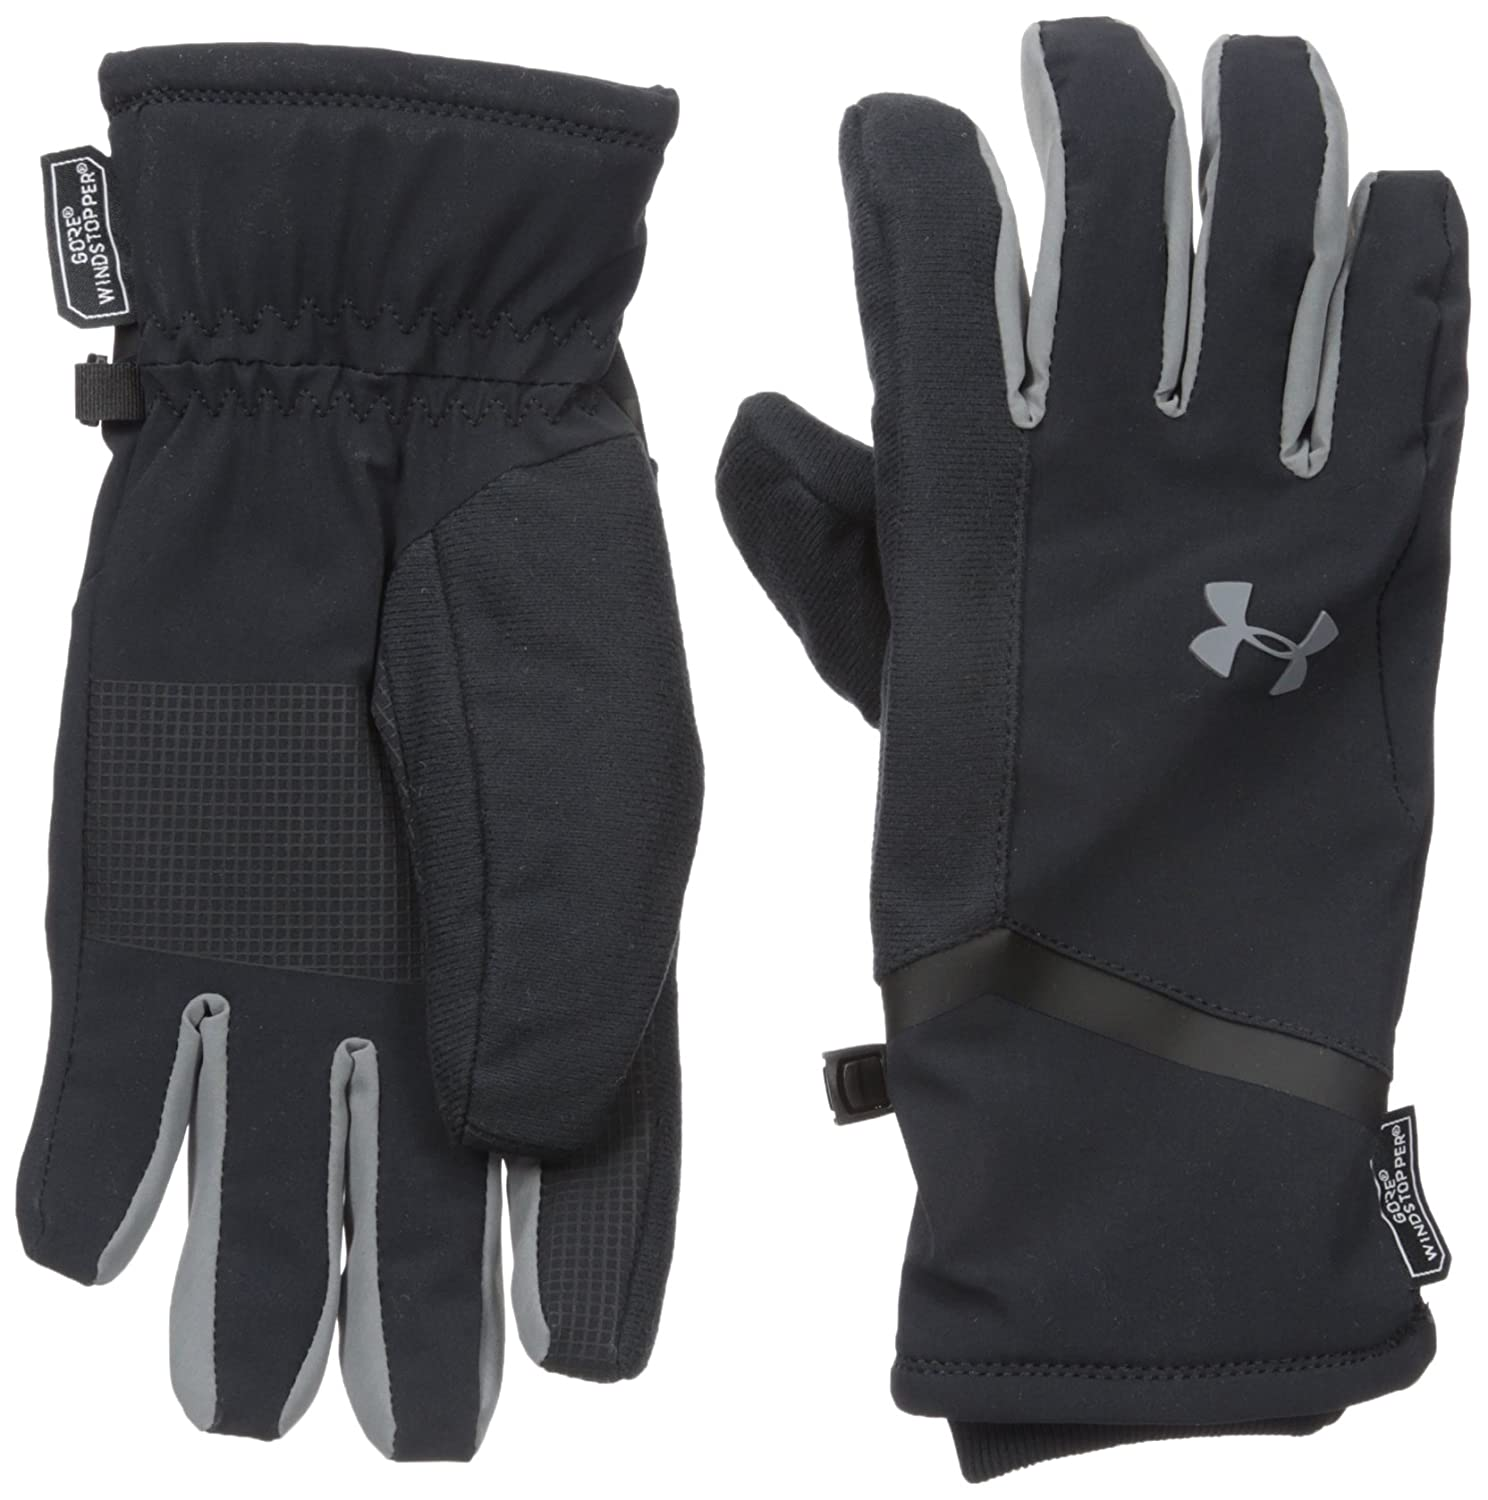 Under Armour Mens Windstopper Glove 2.0 Under Armour Accessories 1300147